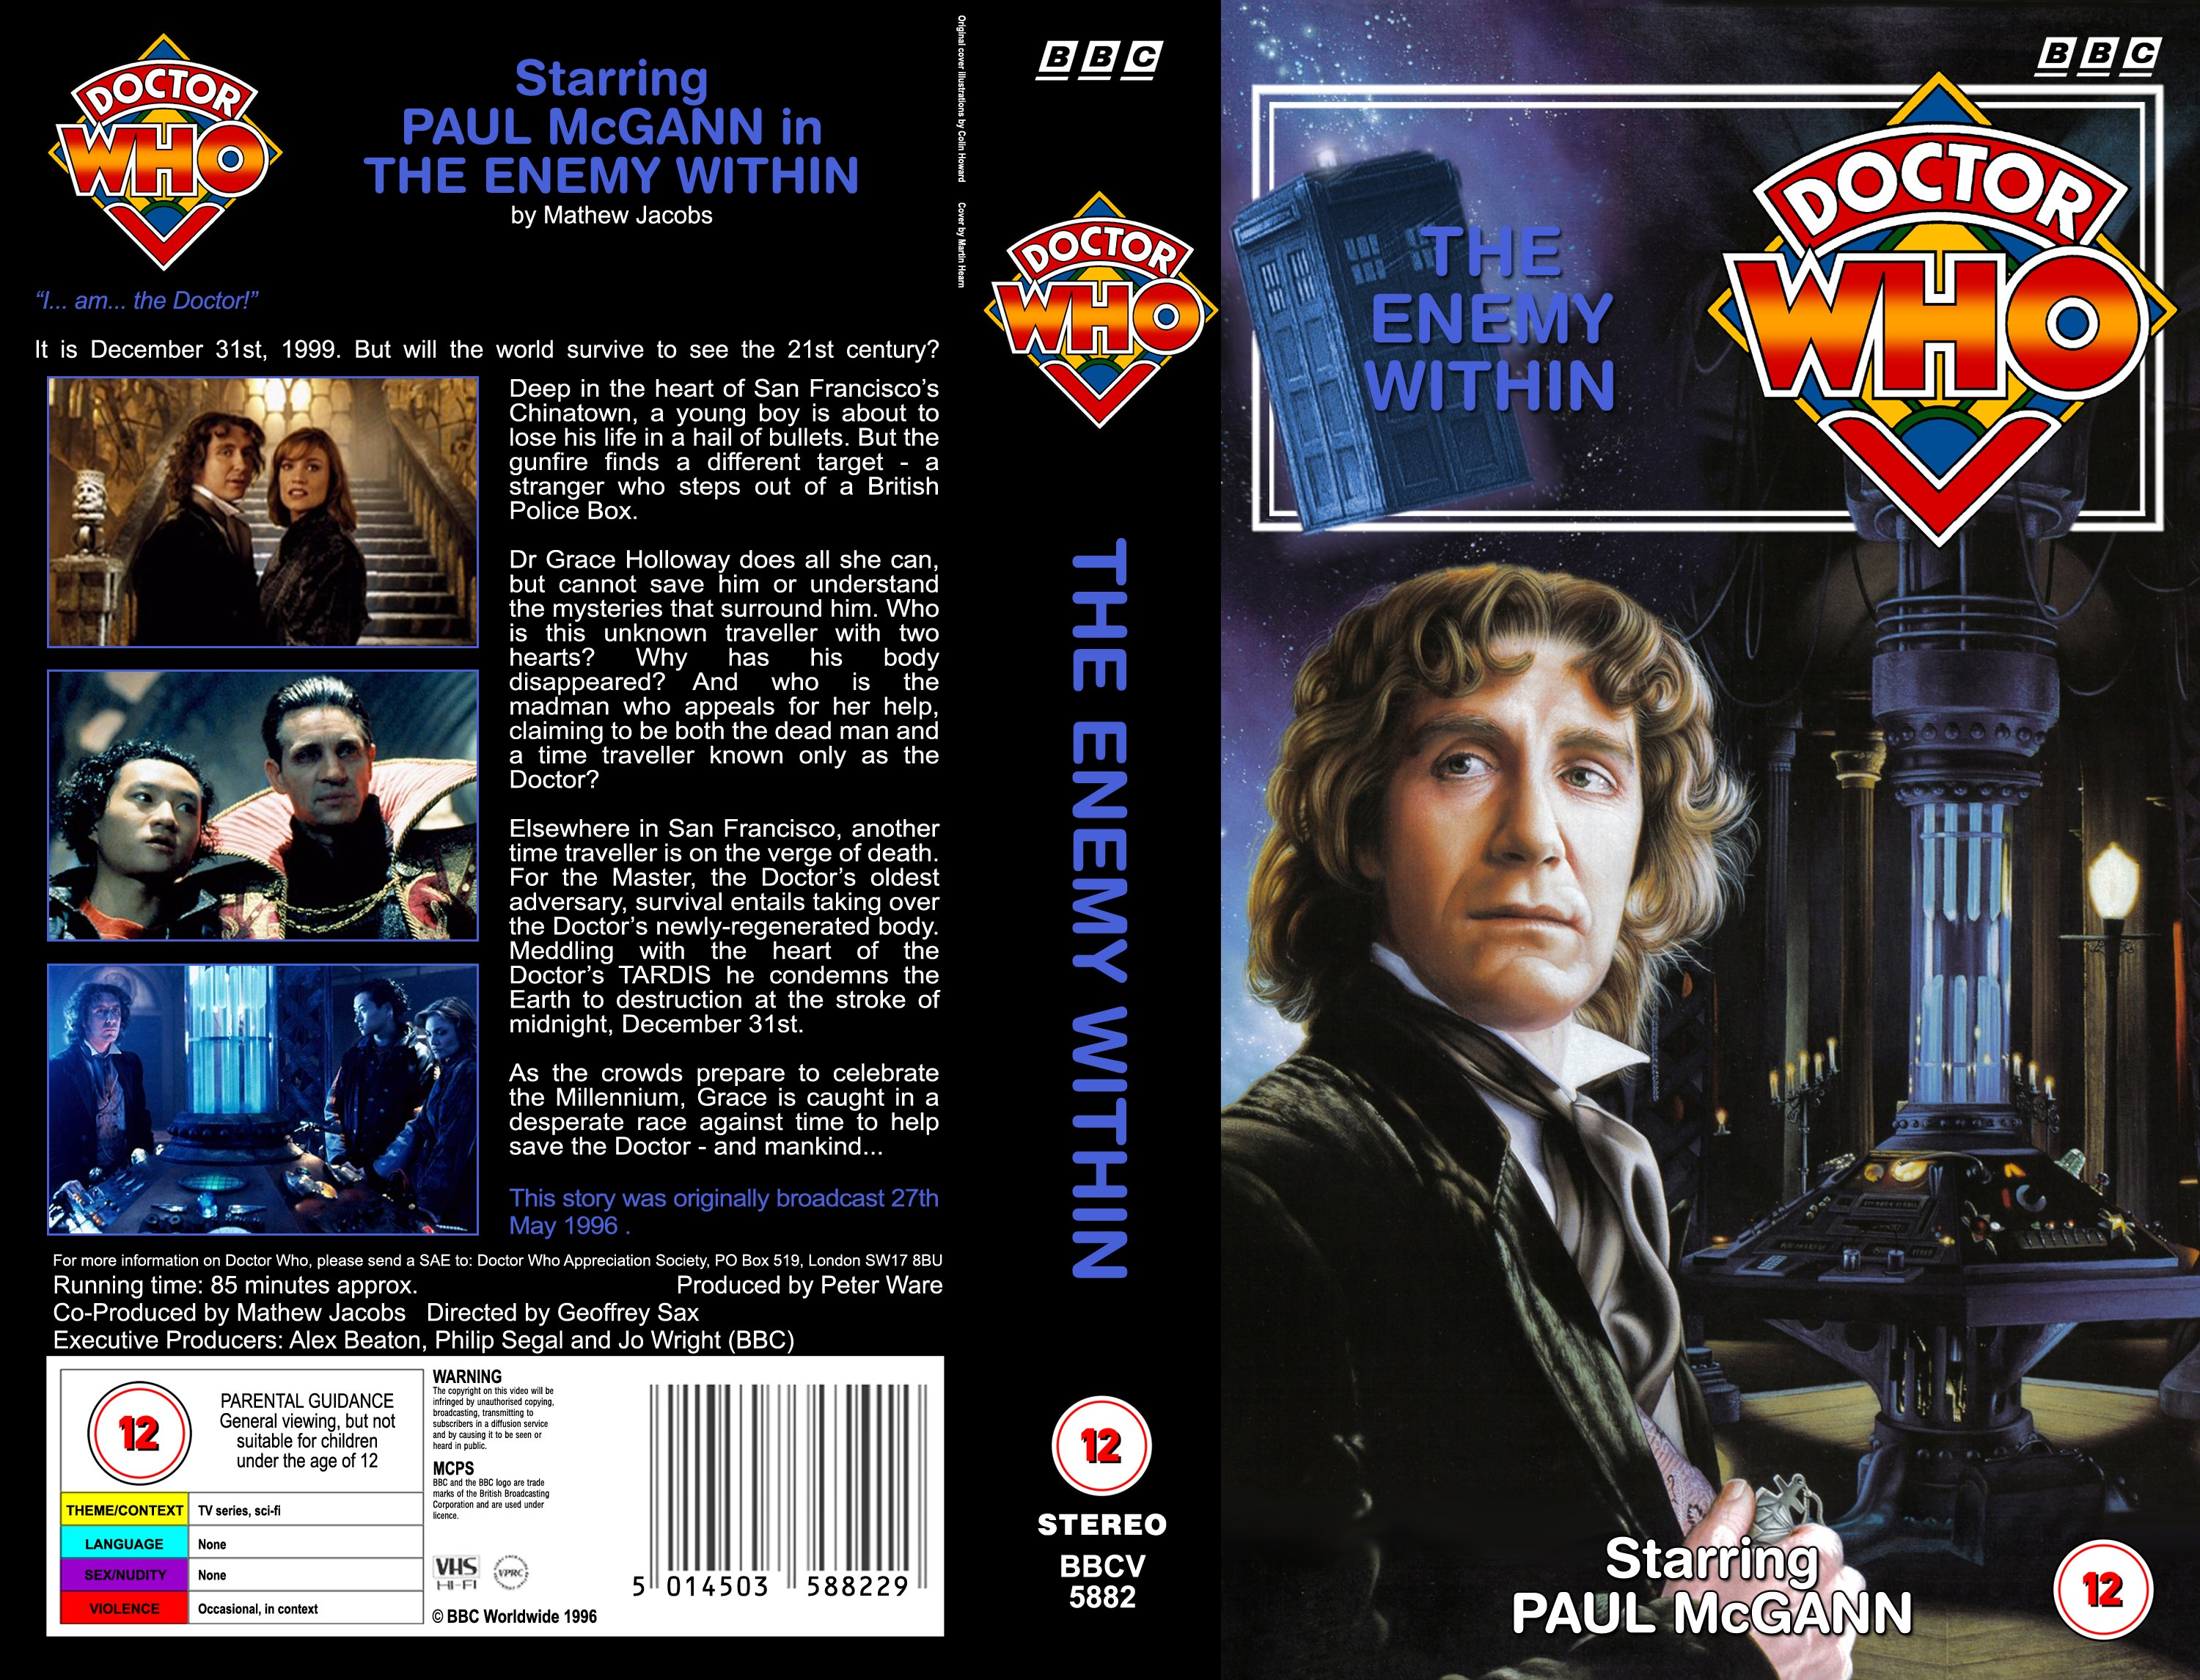 the 1996 tv movie covers